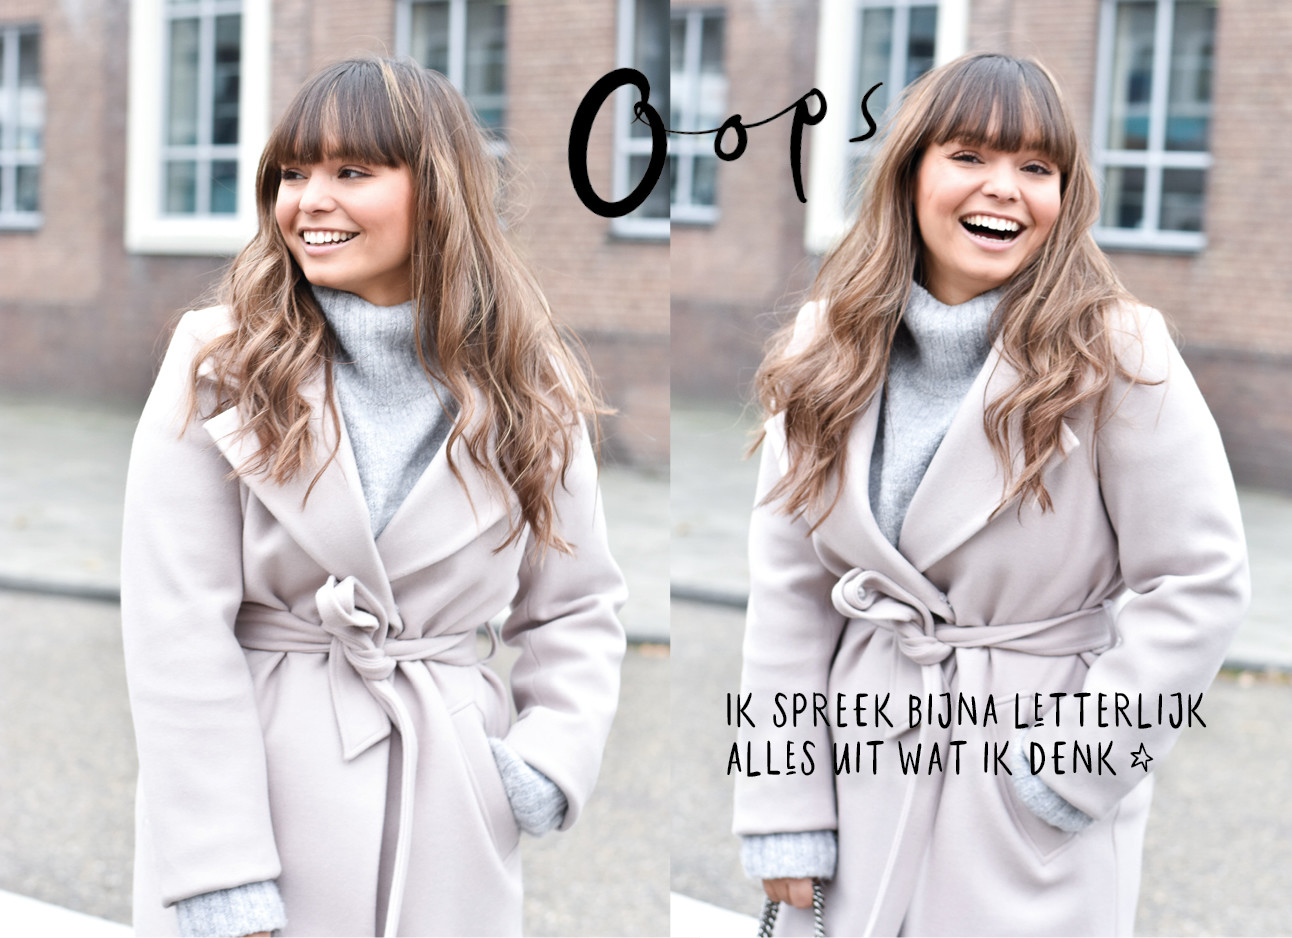 kiki lachend in beige jas met een grijze coltrui voor de look of the day